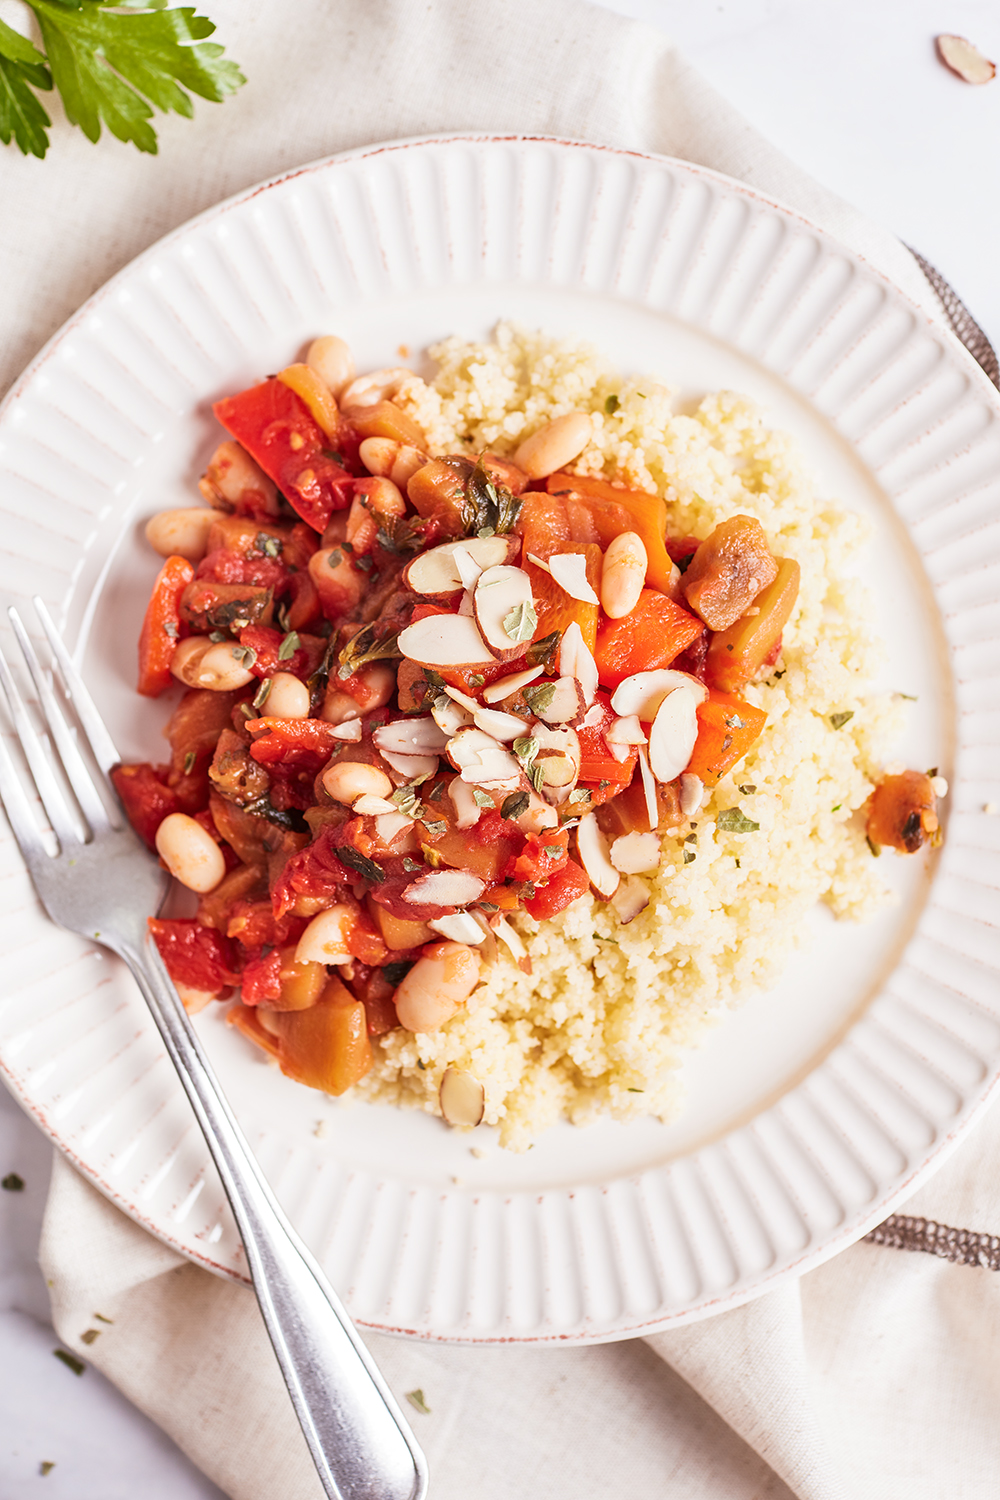 Eggplant and bell peppers stew with white beans